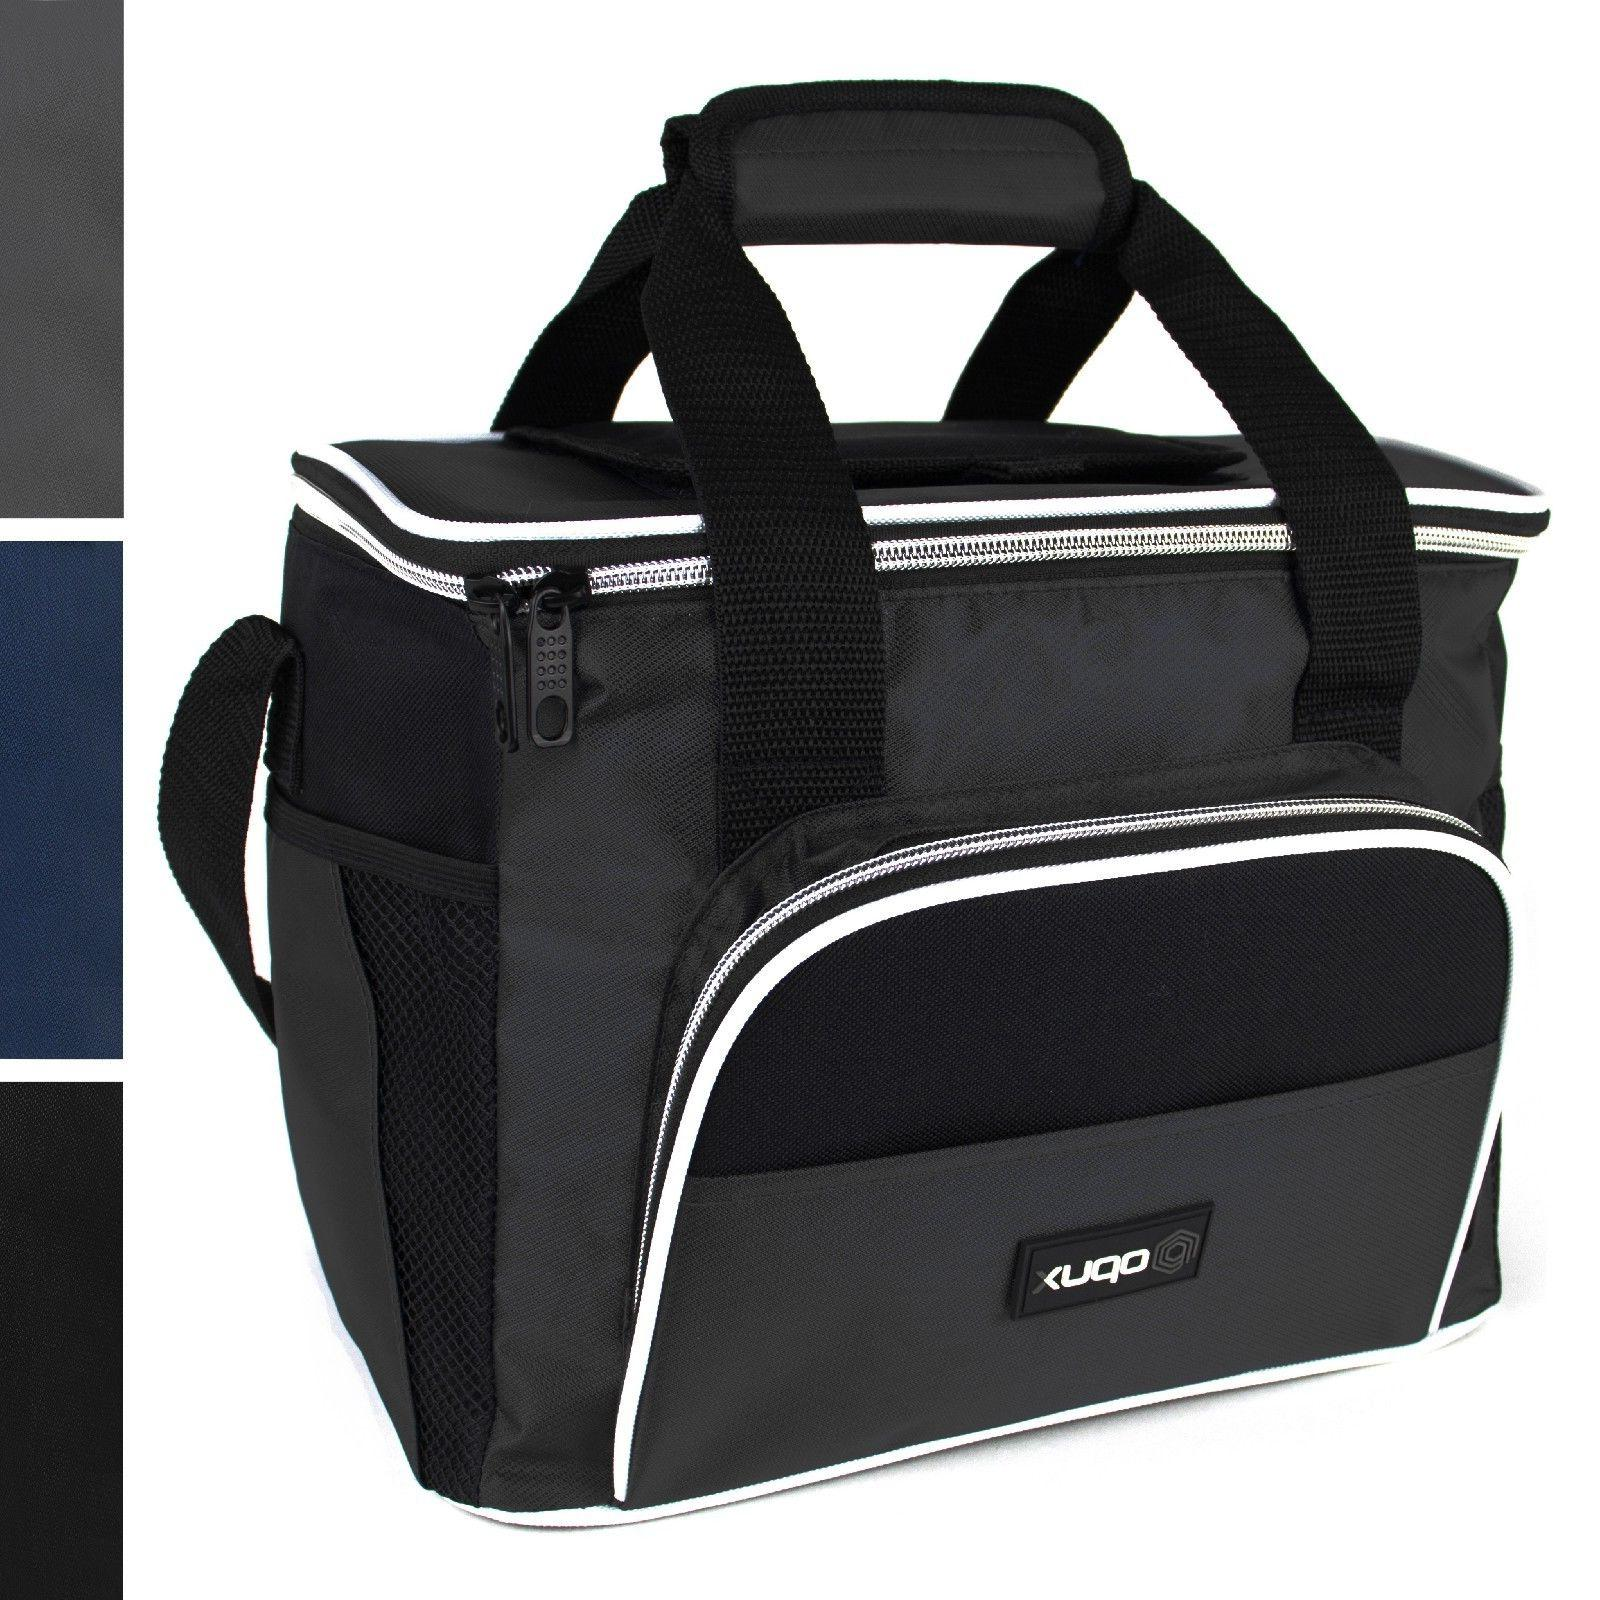 Large Bag Mini Cooler for Adults For Leakproof